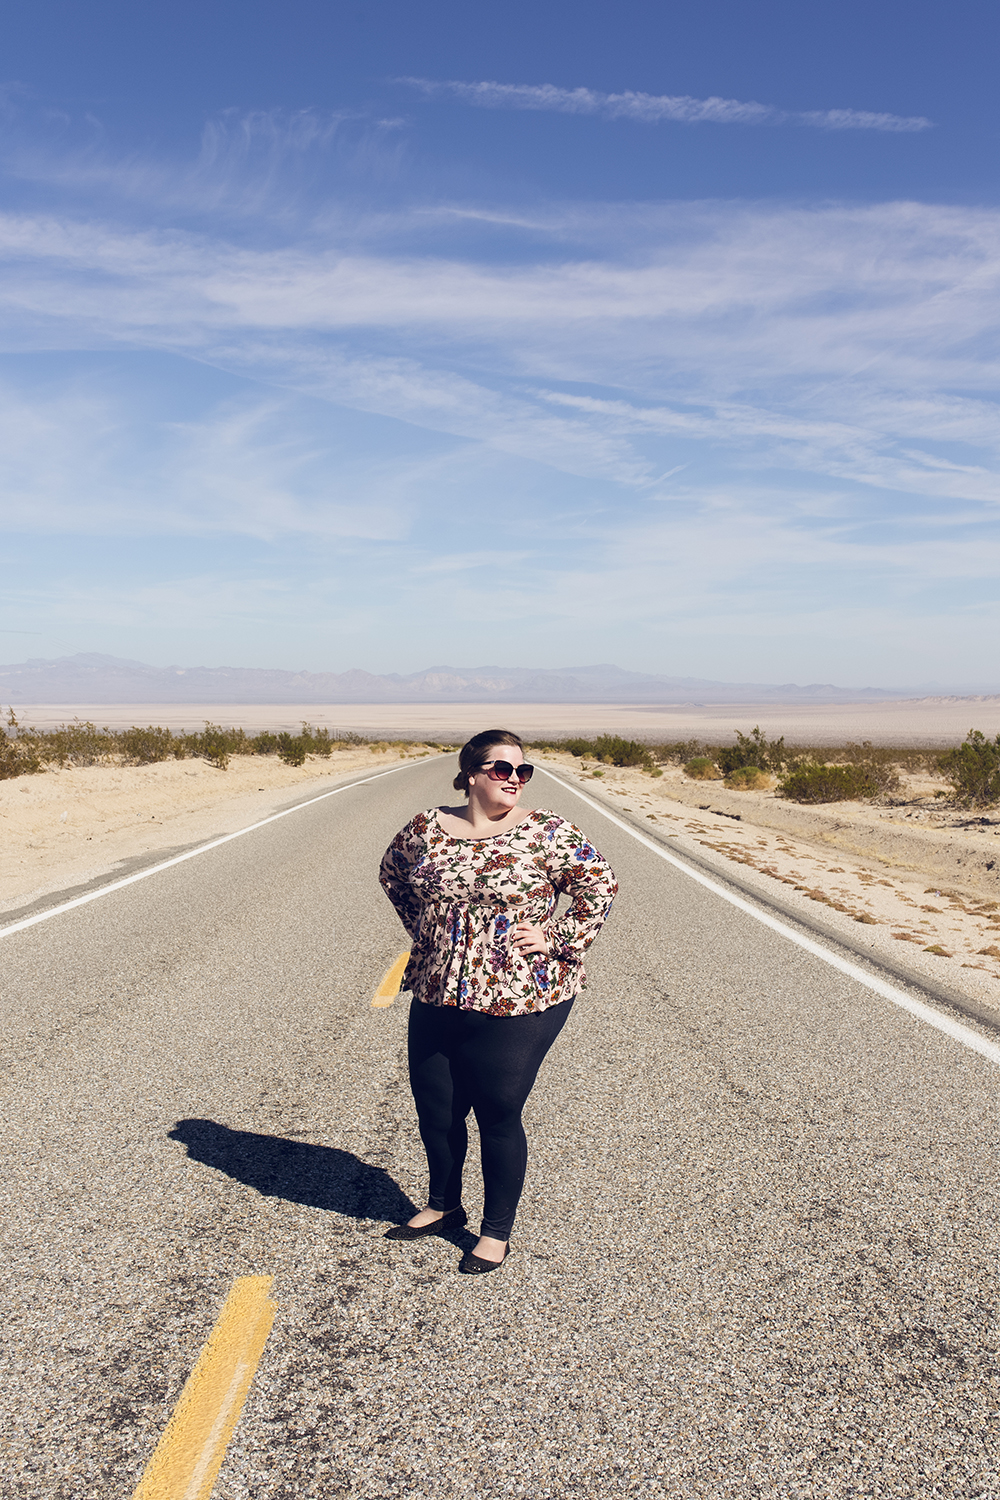 My long trek through Mojave Desert Preserve, California